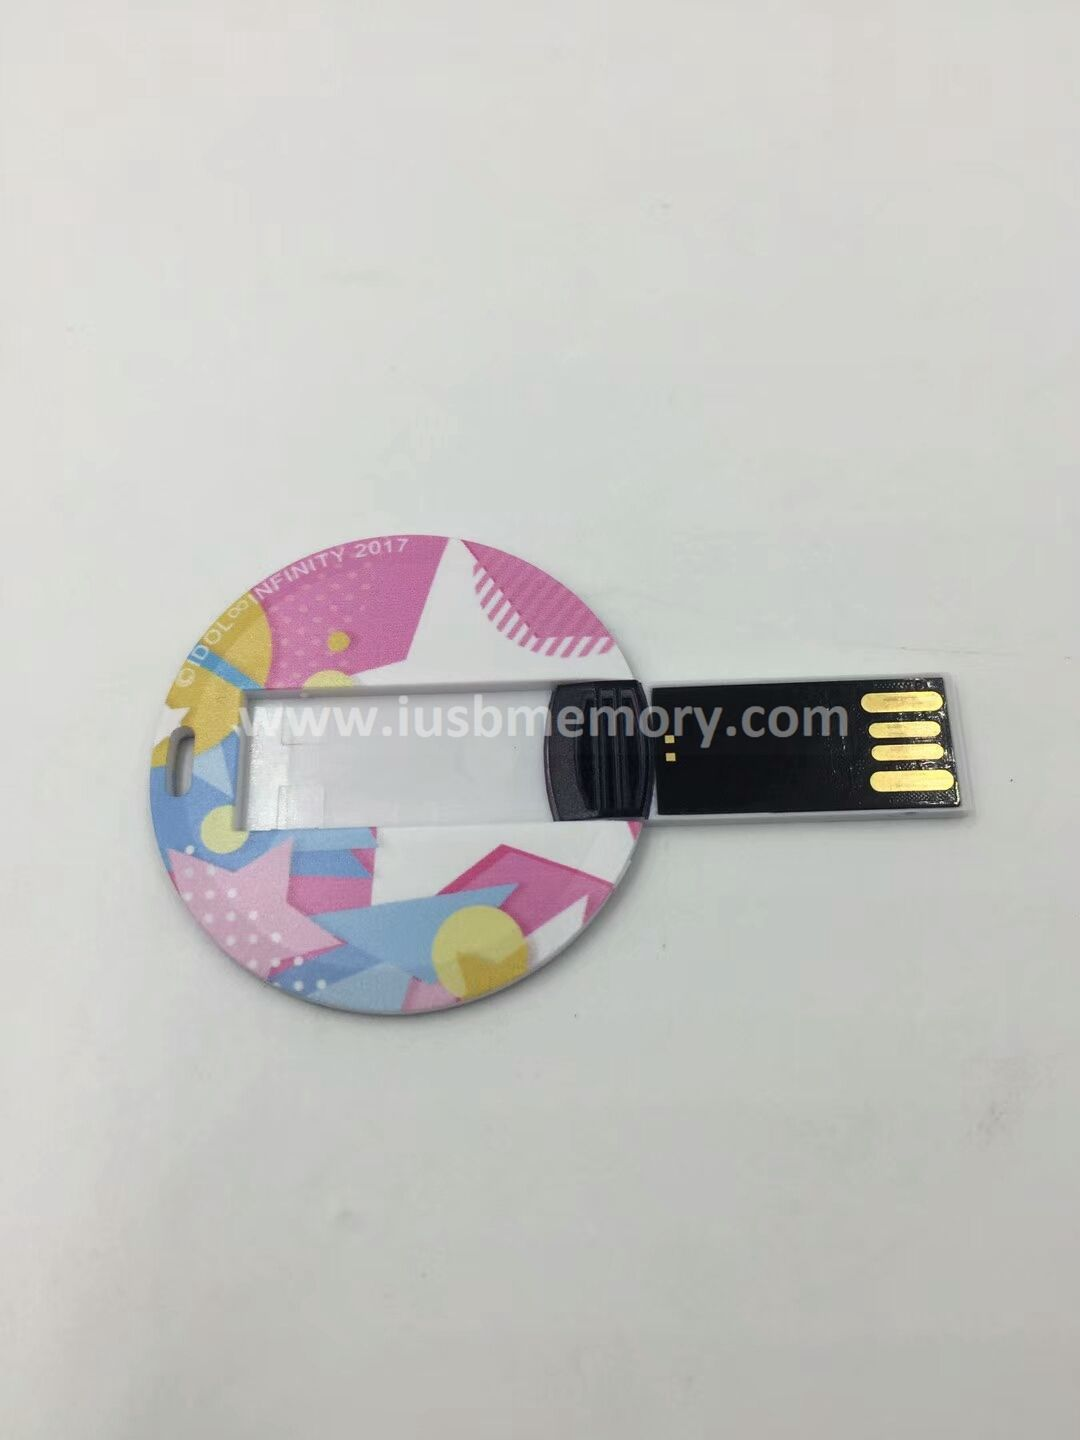 SC-010 round plastic card usb with customized picture